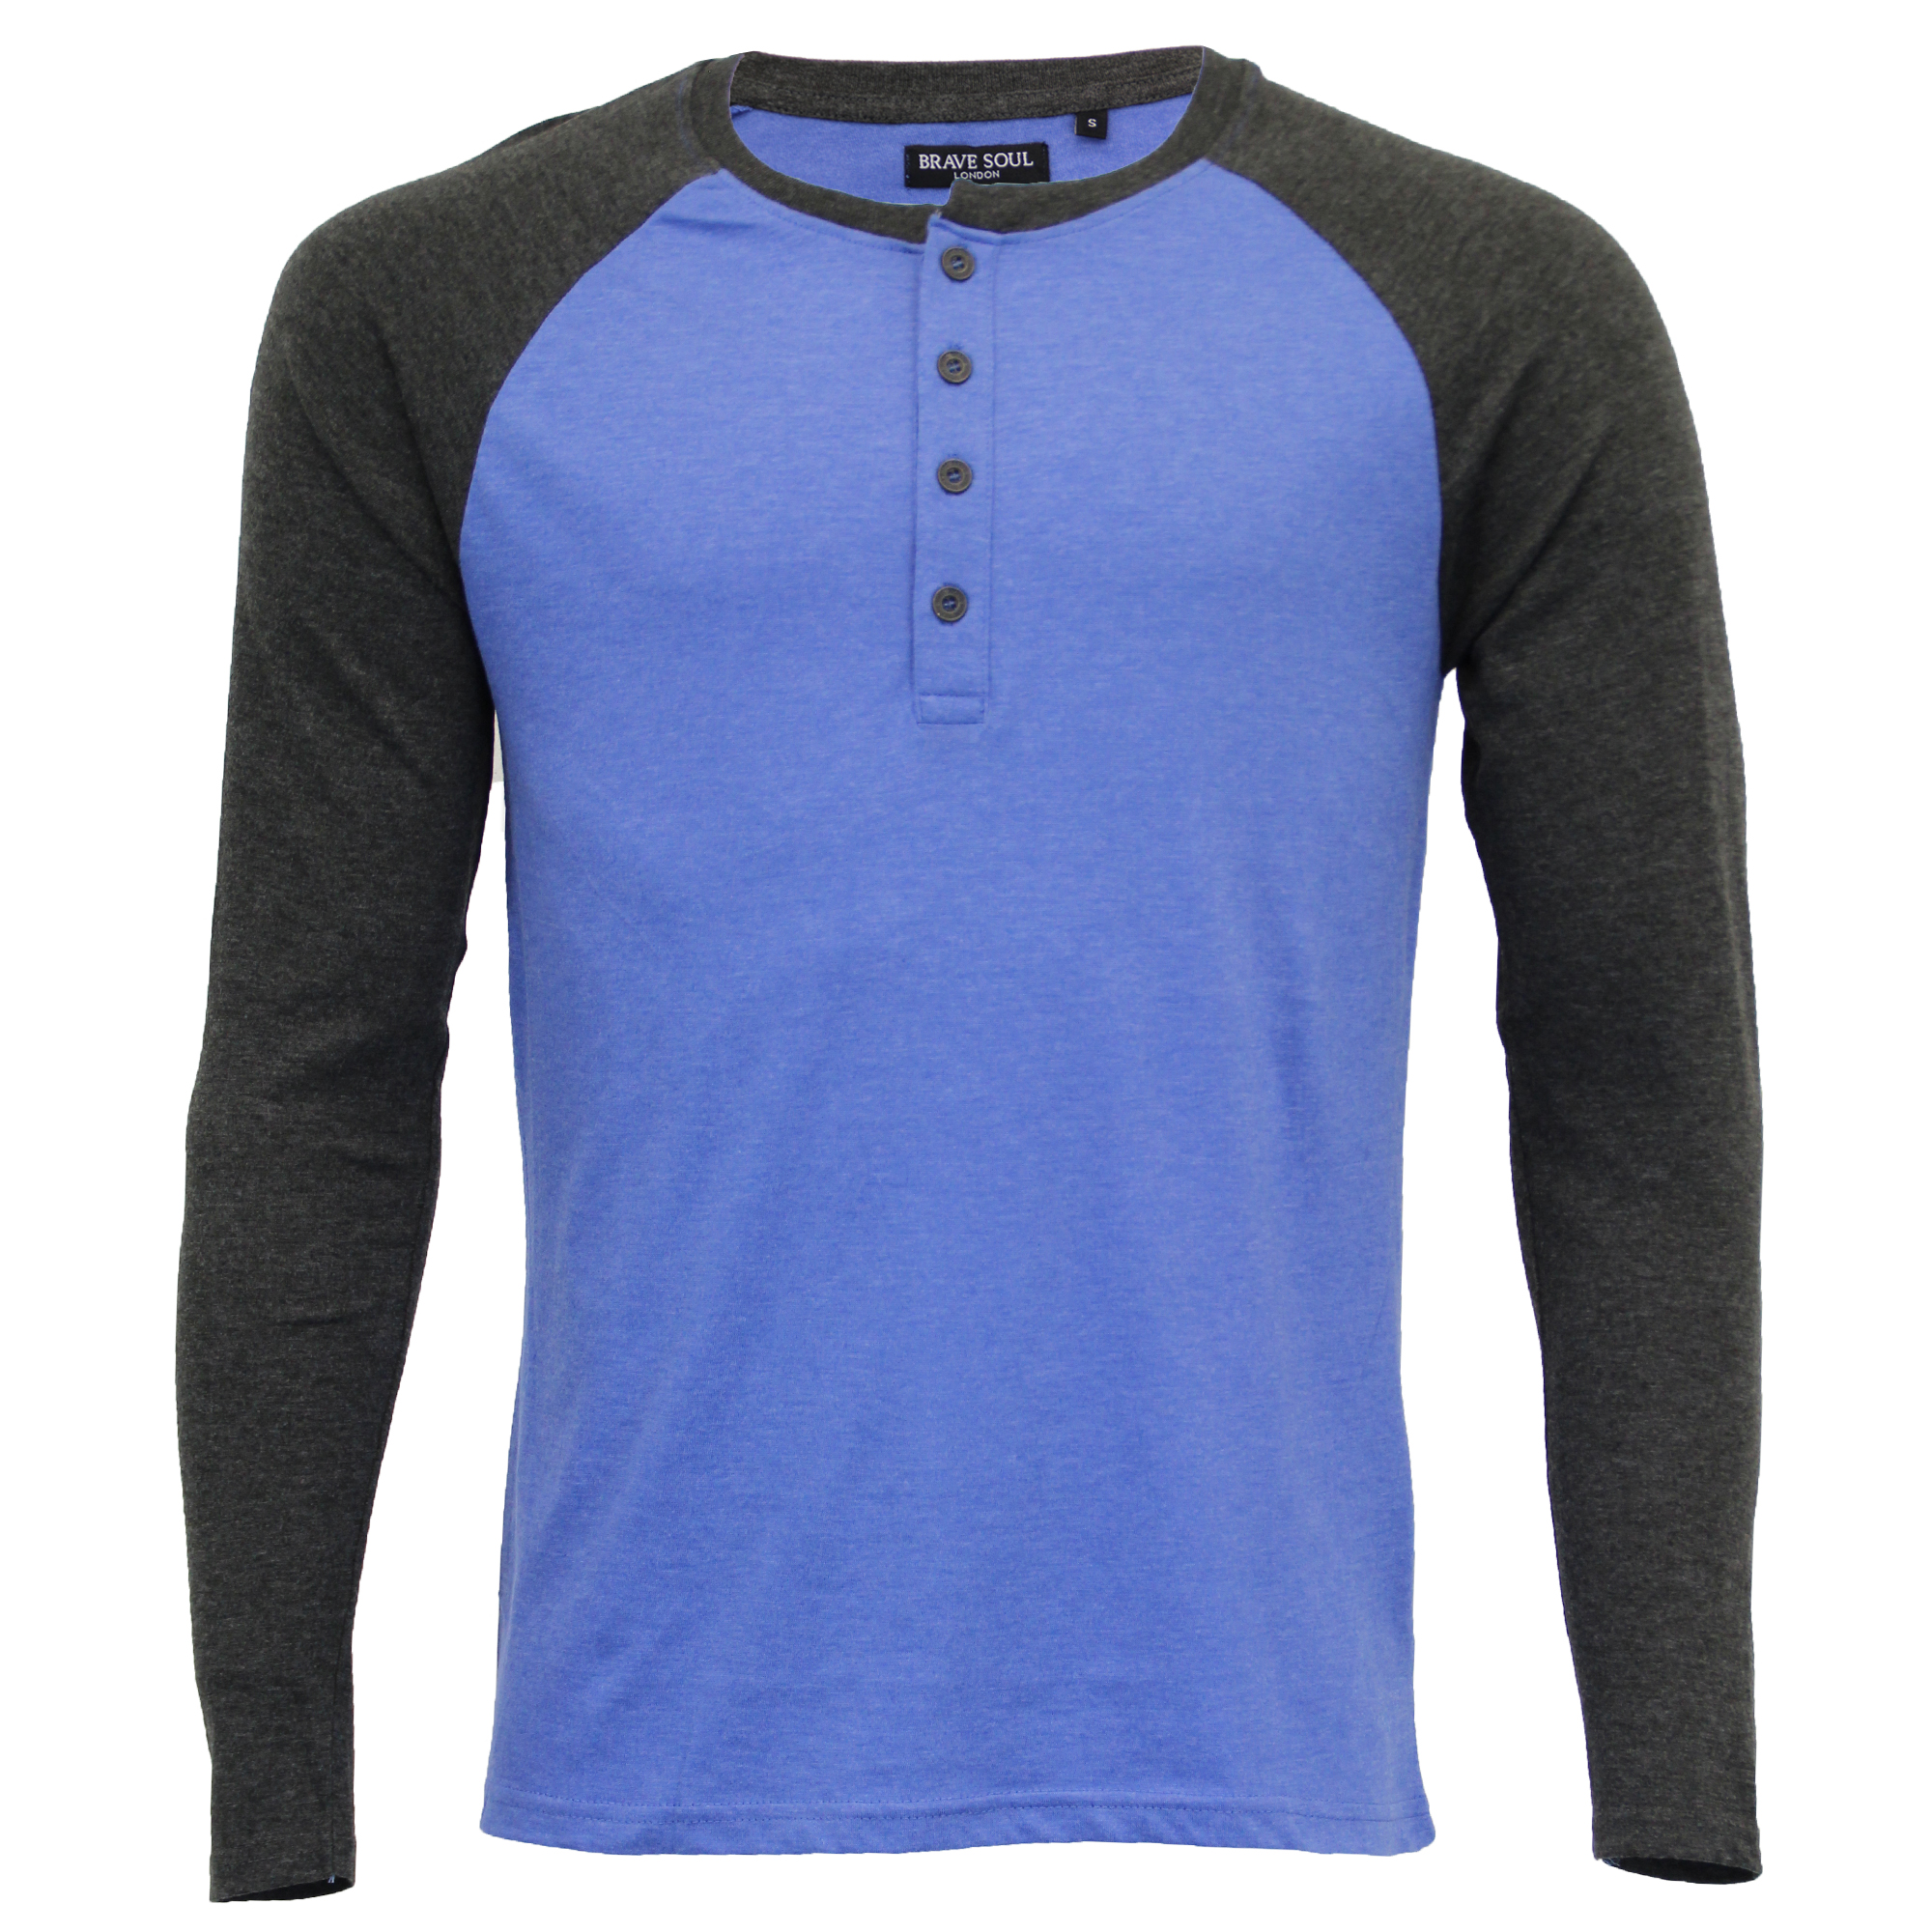 Mens long sleeved jersey top brave soul henley crew neck for Best henley long sleeve shirts